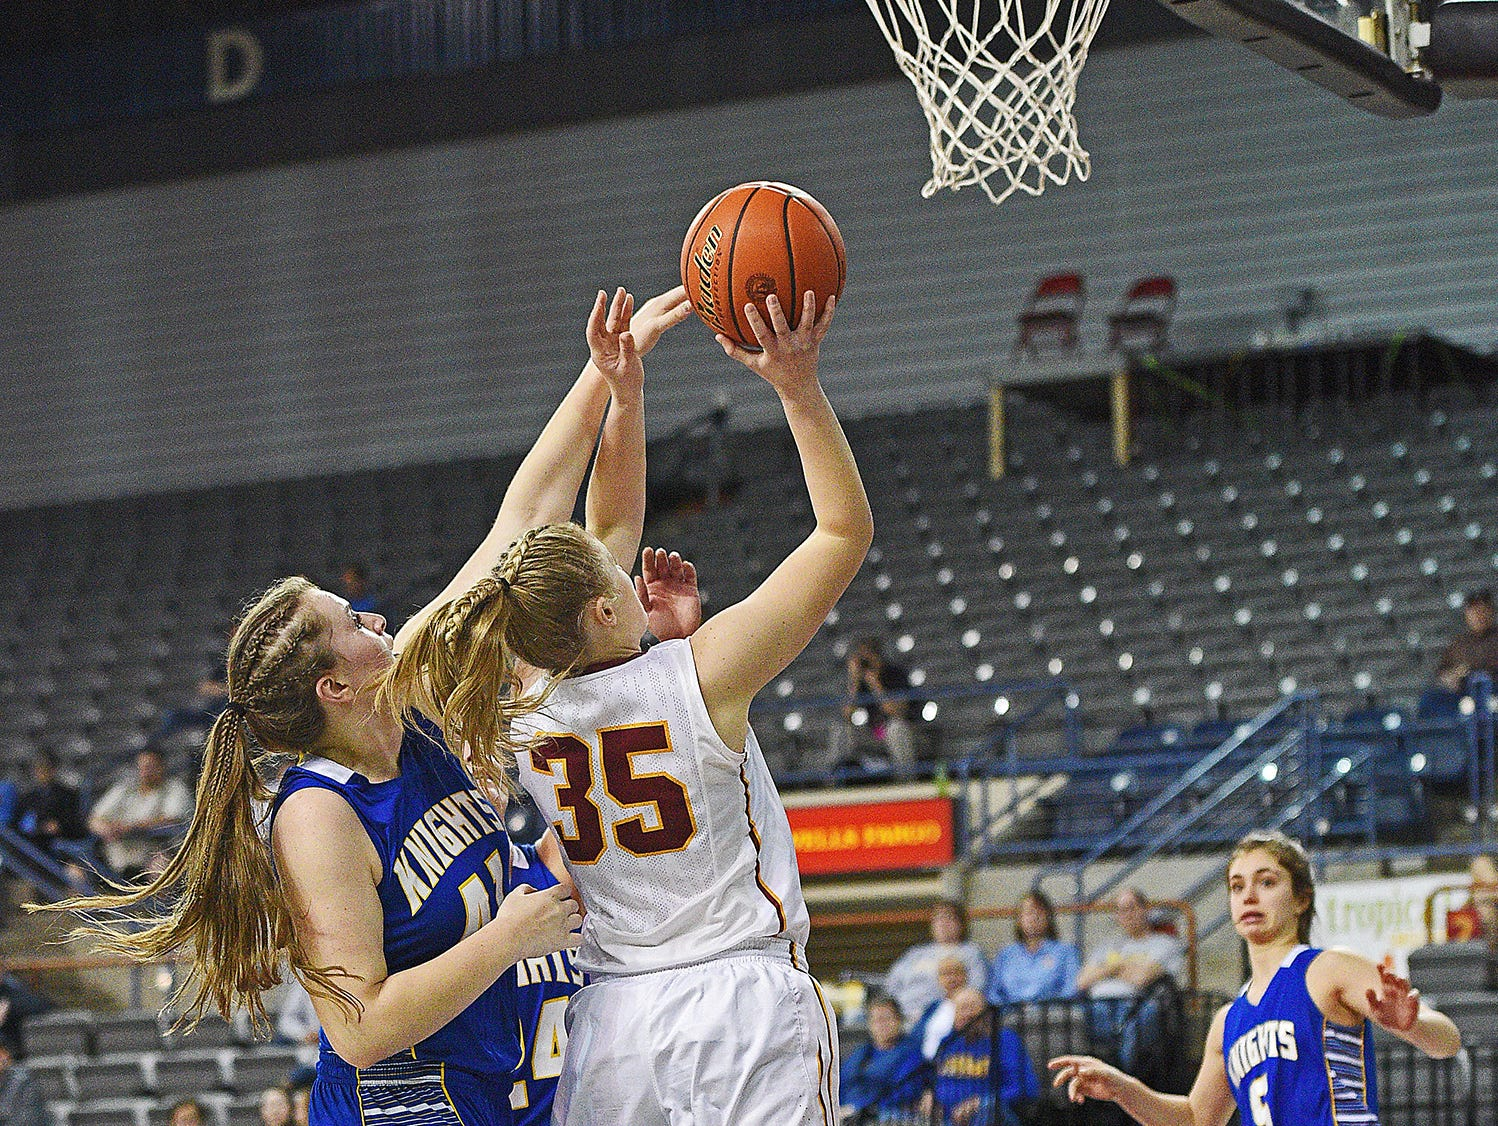 Roosevelt's Madisyn Waltman (35) goes up for a shot as O'Gorman's Courtney Baruth (41) defends during a 2017 SDHSAA Class AA State Girls Basketball quarterfinal game Thursday, March 16, 2017, at Rushmore Plaza Civic Center in Rapid City. O'Gorman beat Roosevelt 37-33.